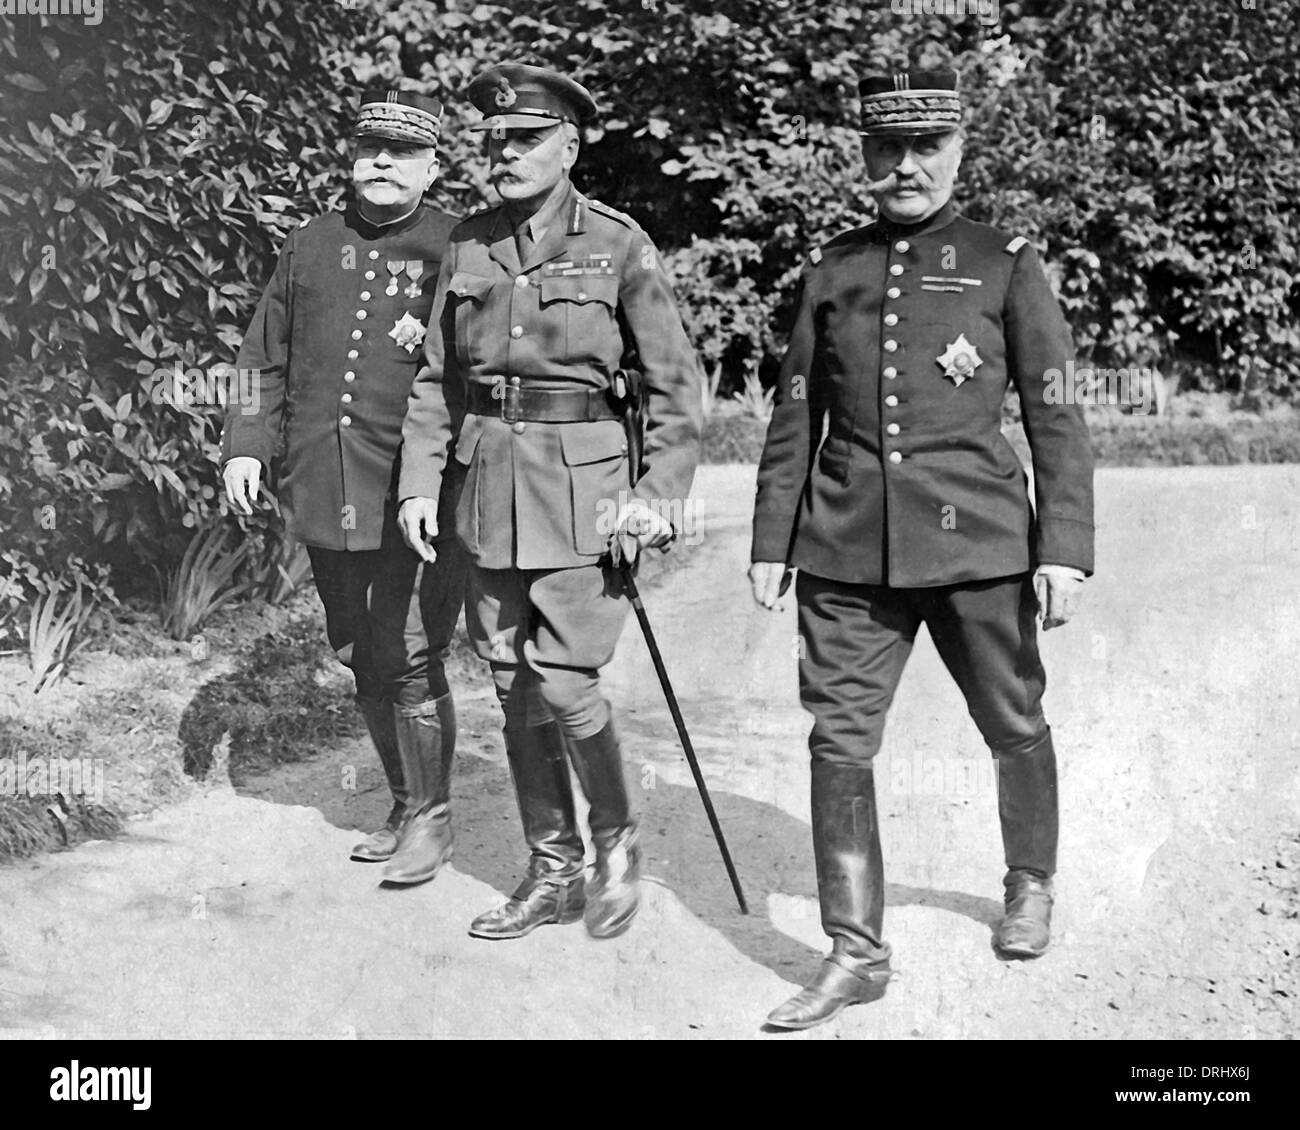 Sir Douglas Haig with Generals Joffre and Foch, WW1 - Stock Image